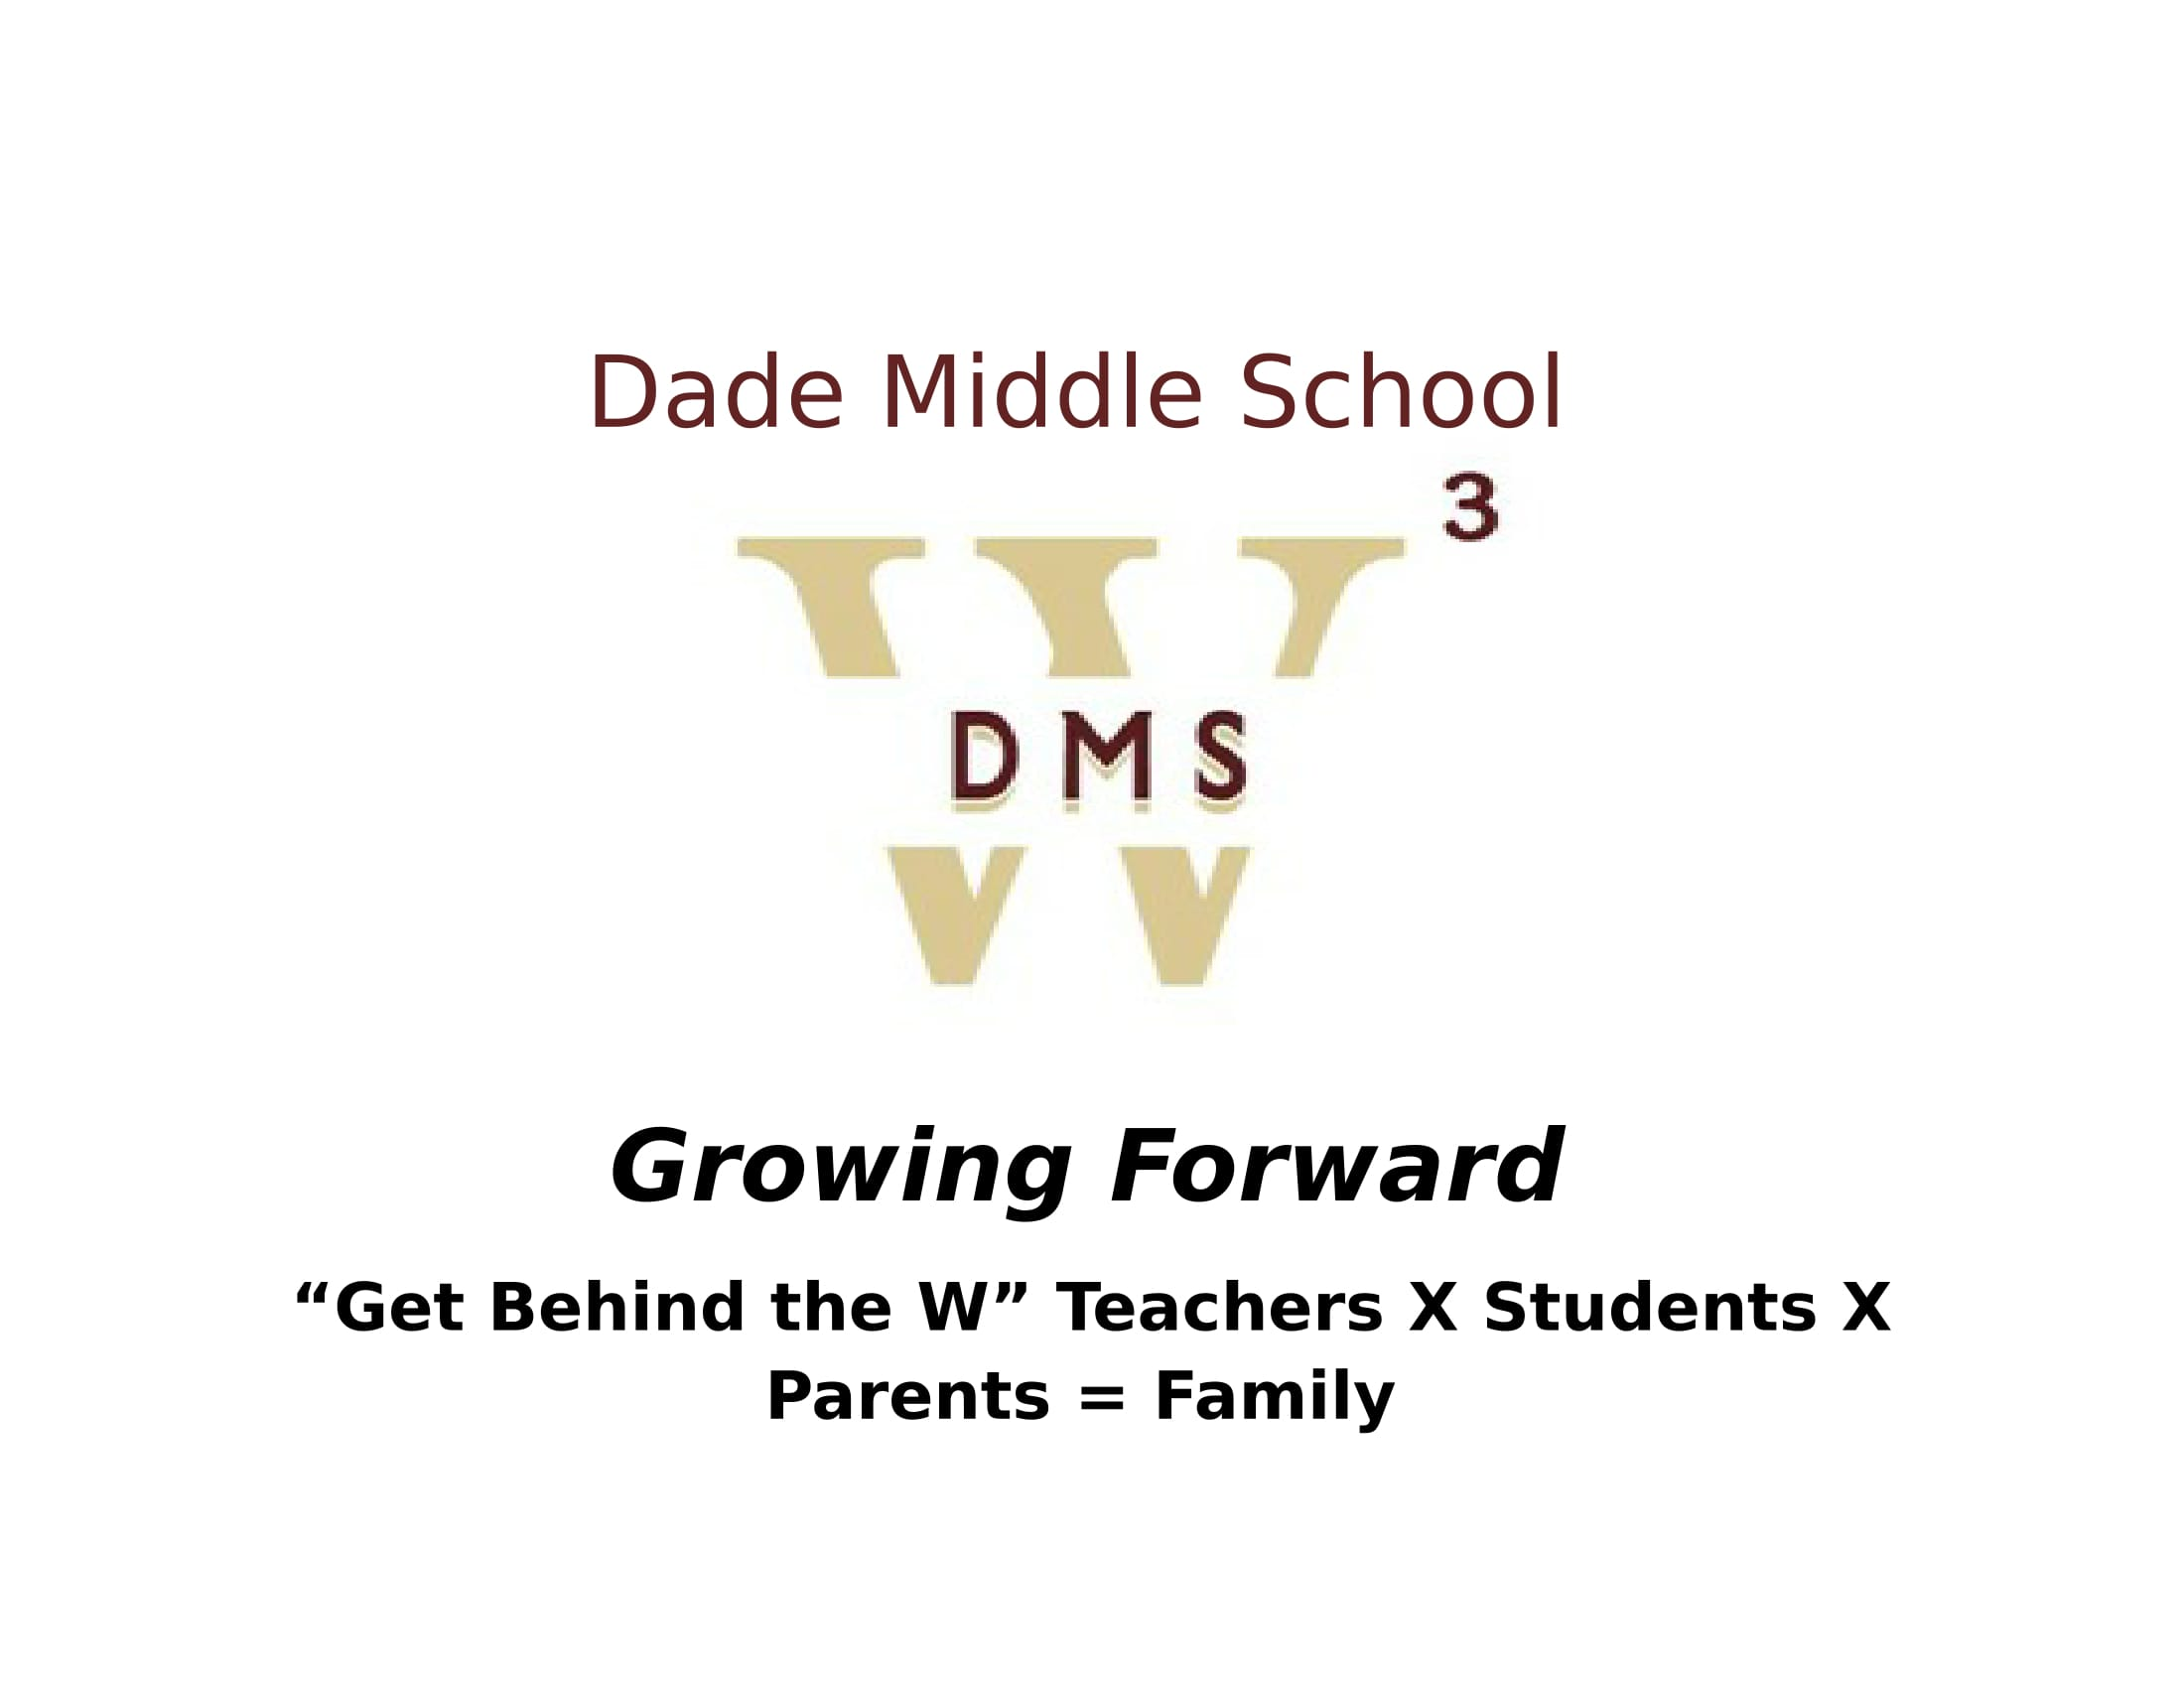 Dade Middle